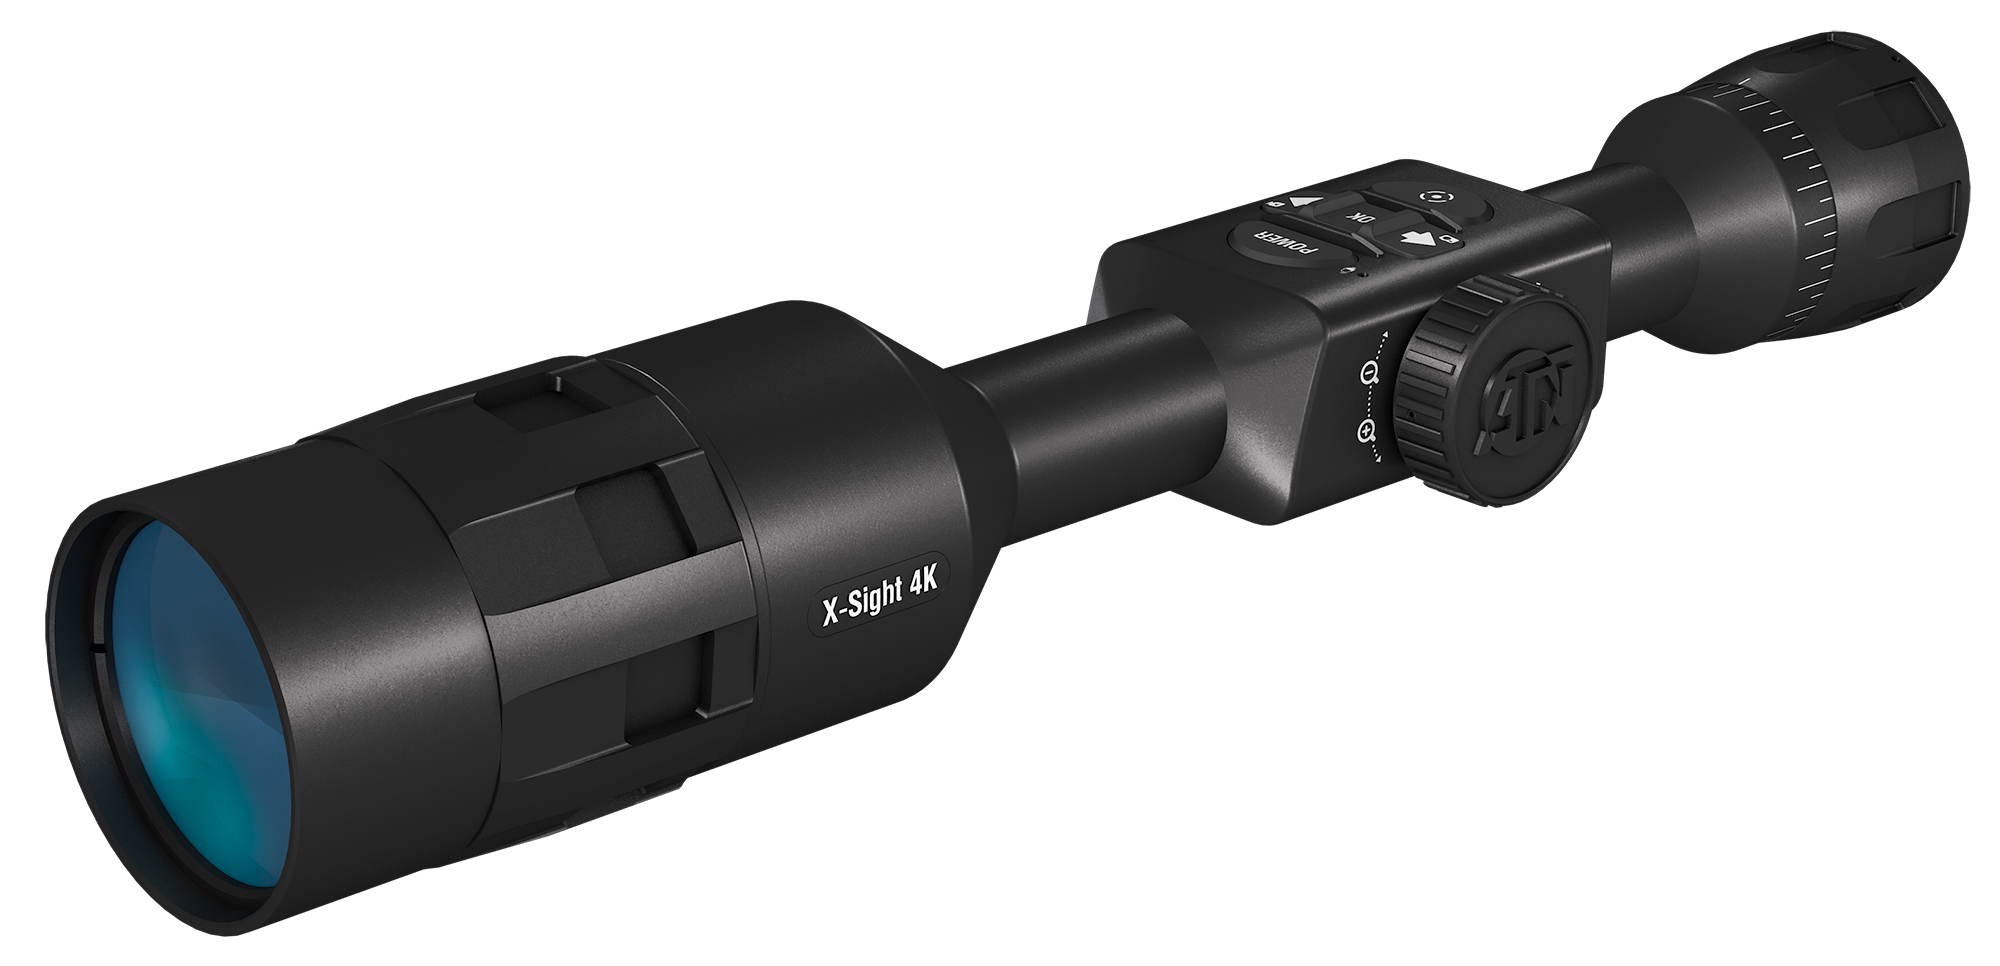 ATN Rifle Scope Day & Night X-Sight 4K Pro Edition